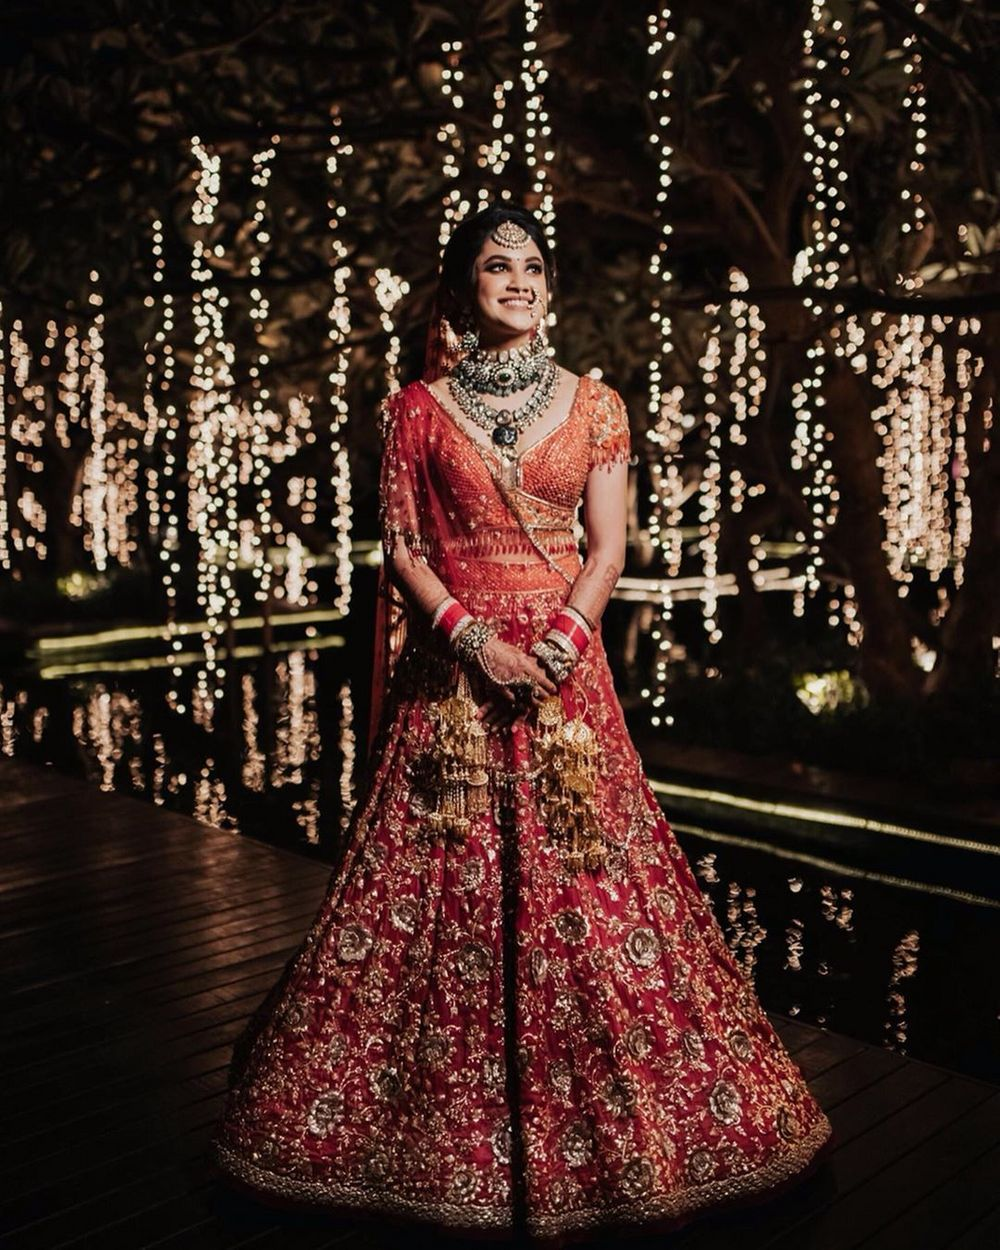 Photo of A beautiful orange and red bridal outfit by Tarun Tahiliani